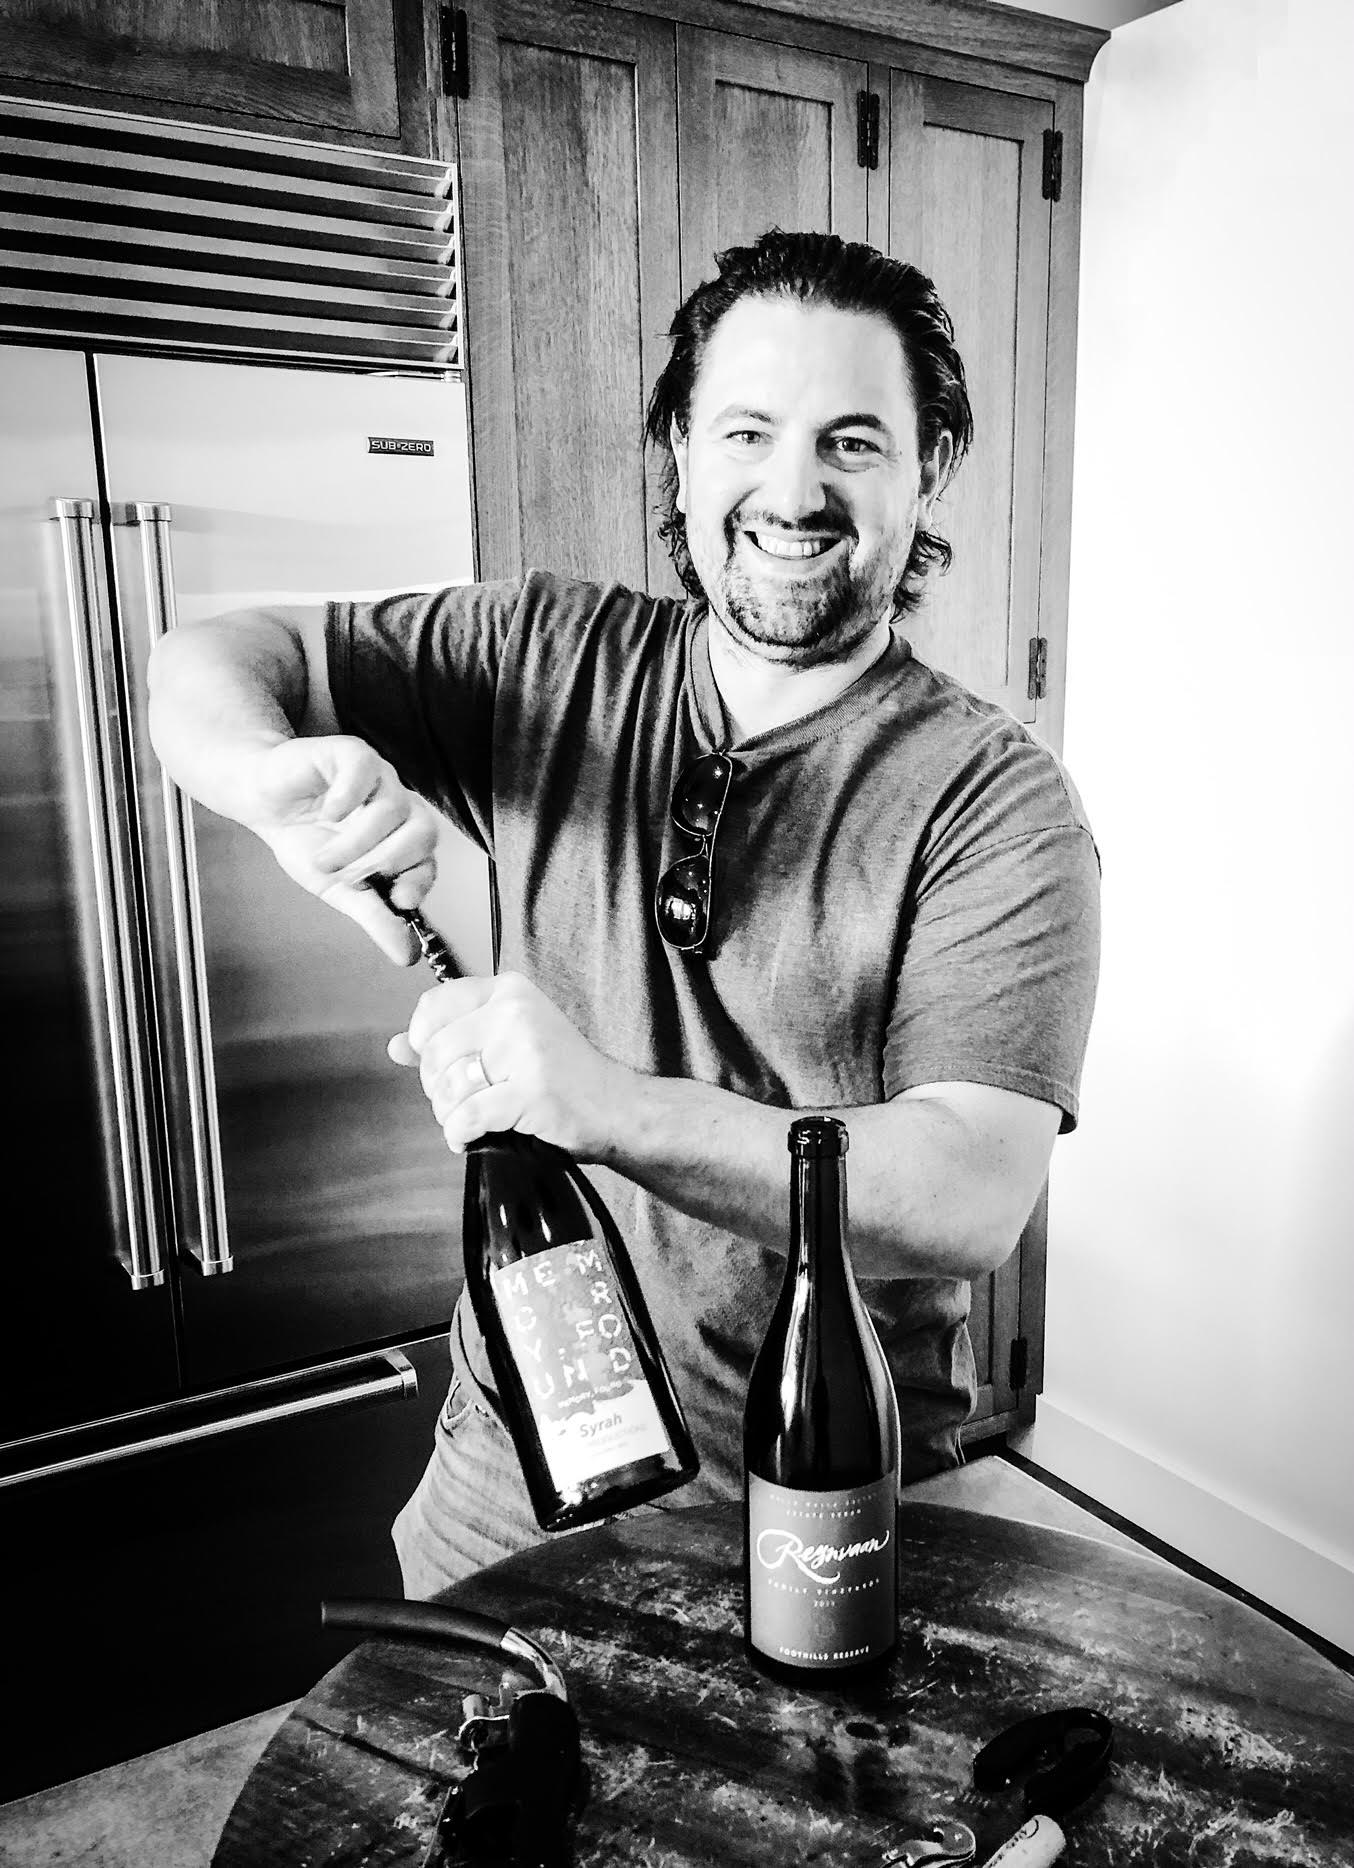 Great photo here of Matt Reynvaan with his wines.